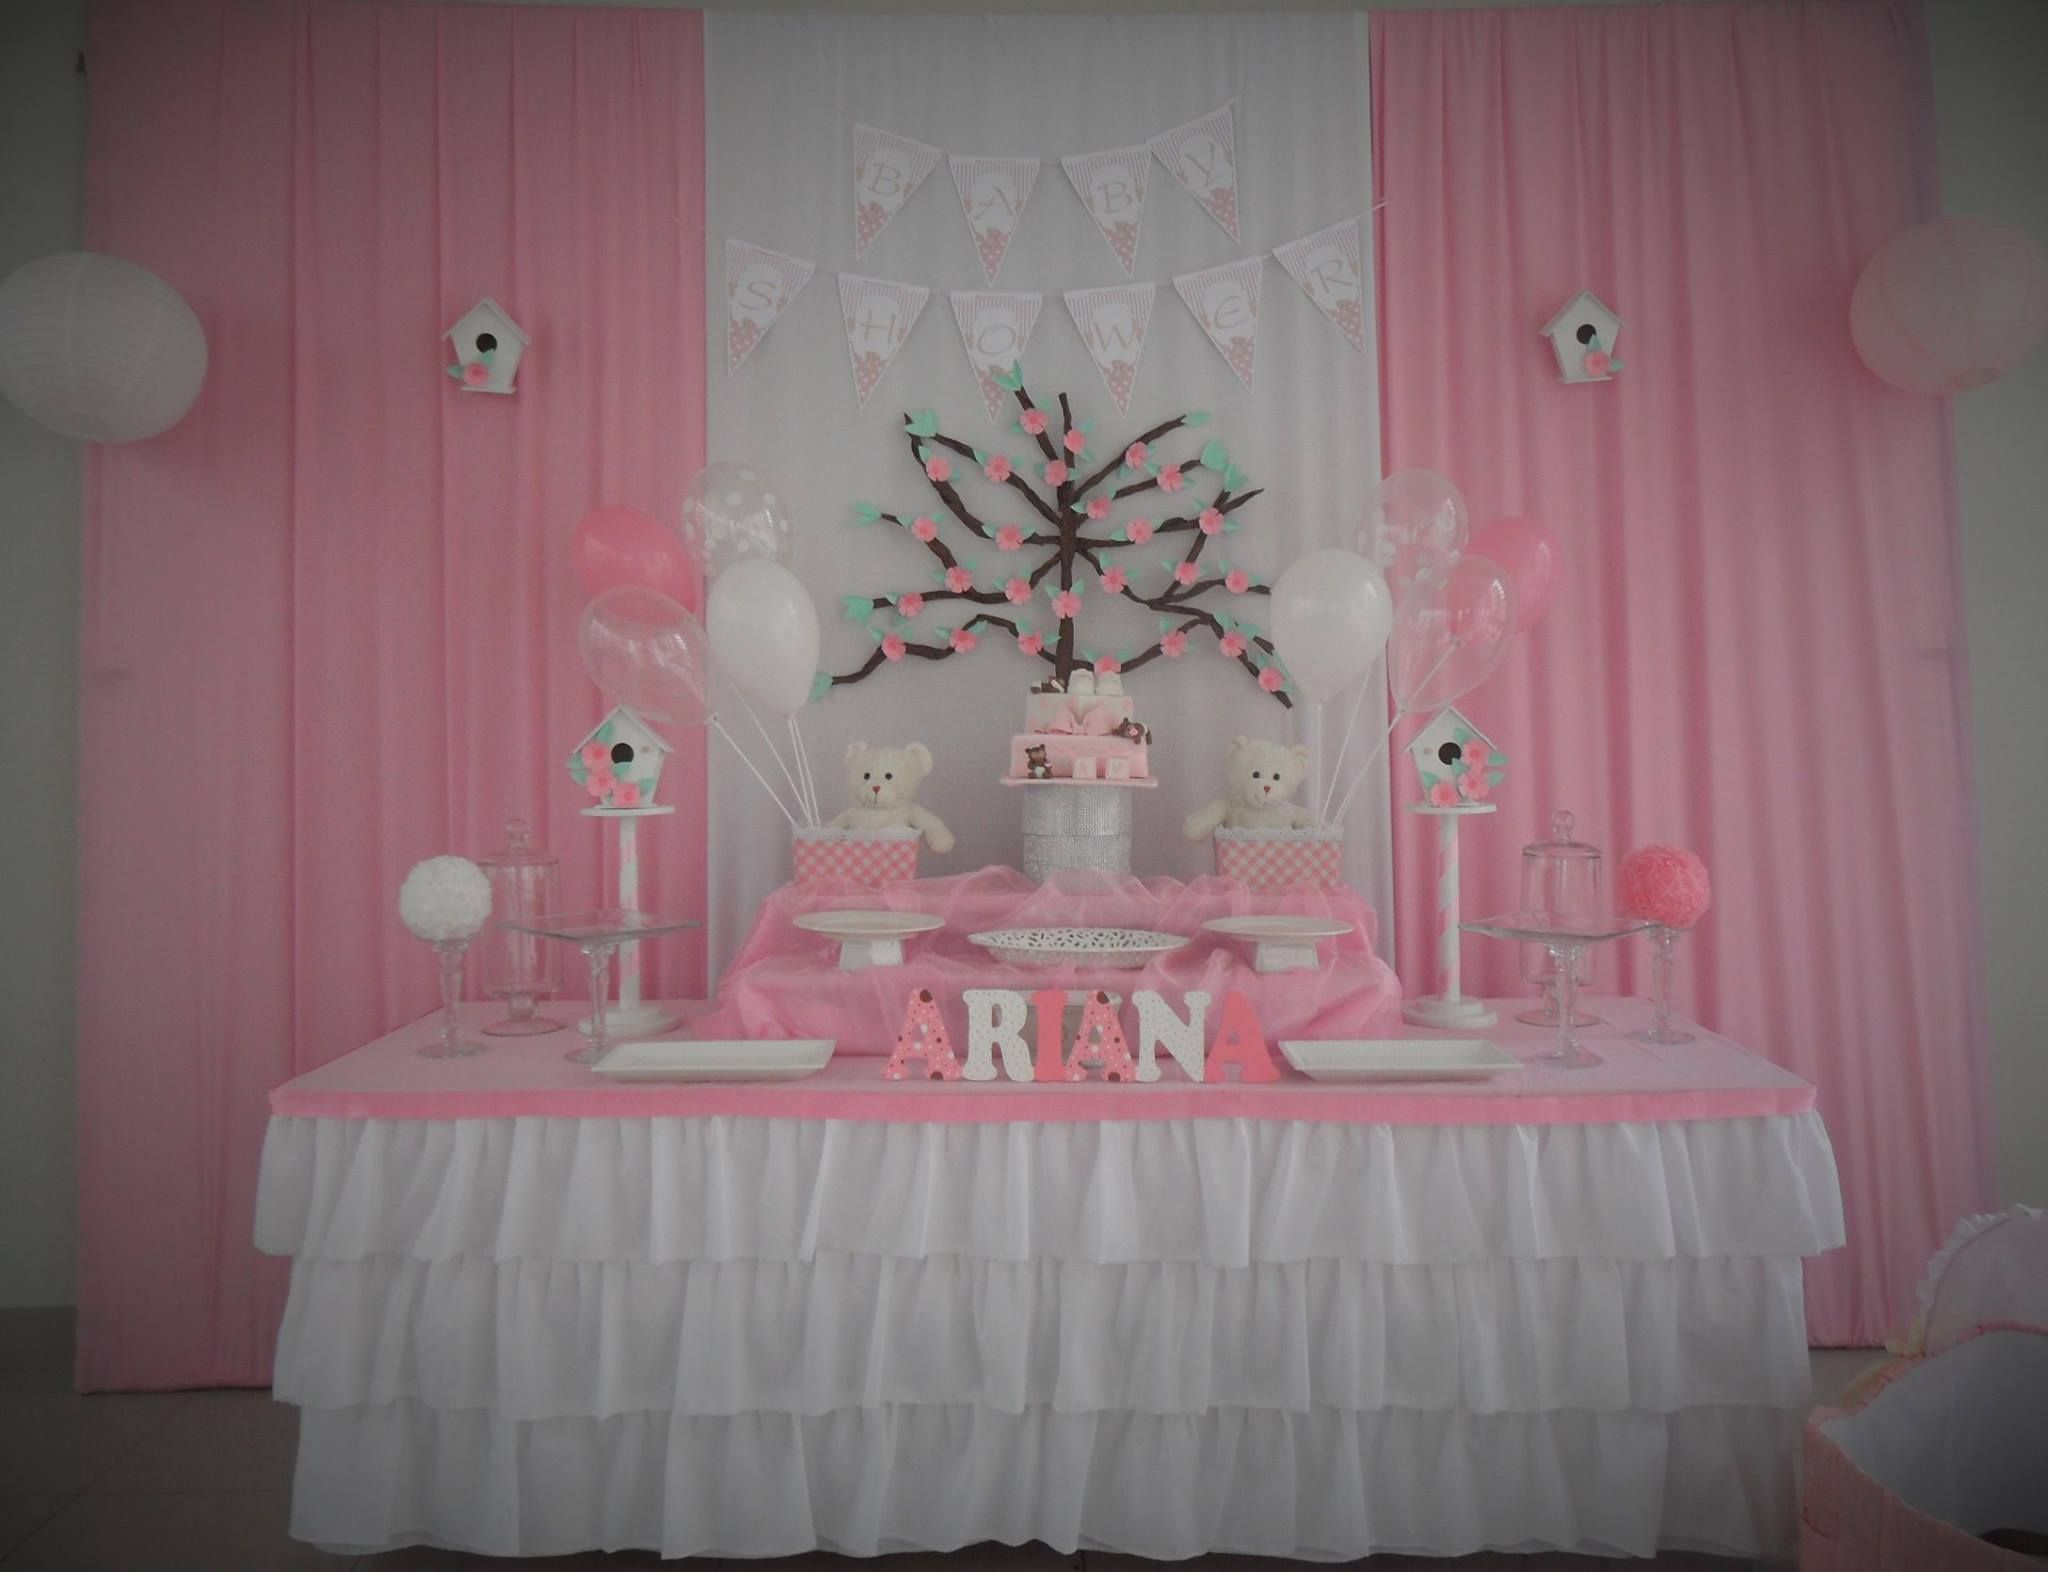 Decoraci n para baby shower arequipa and fiestas - Baby shower decoracion ...